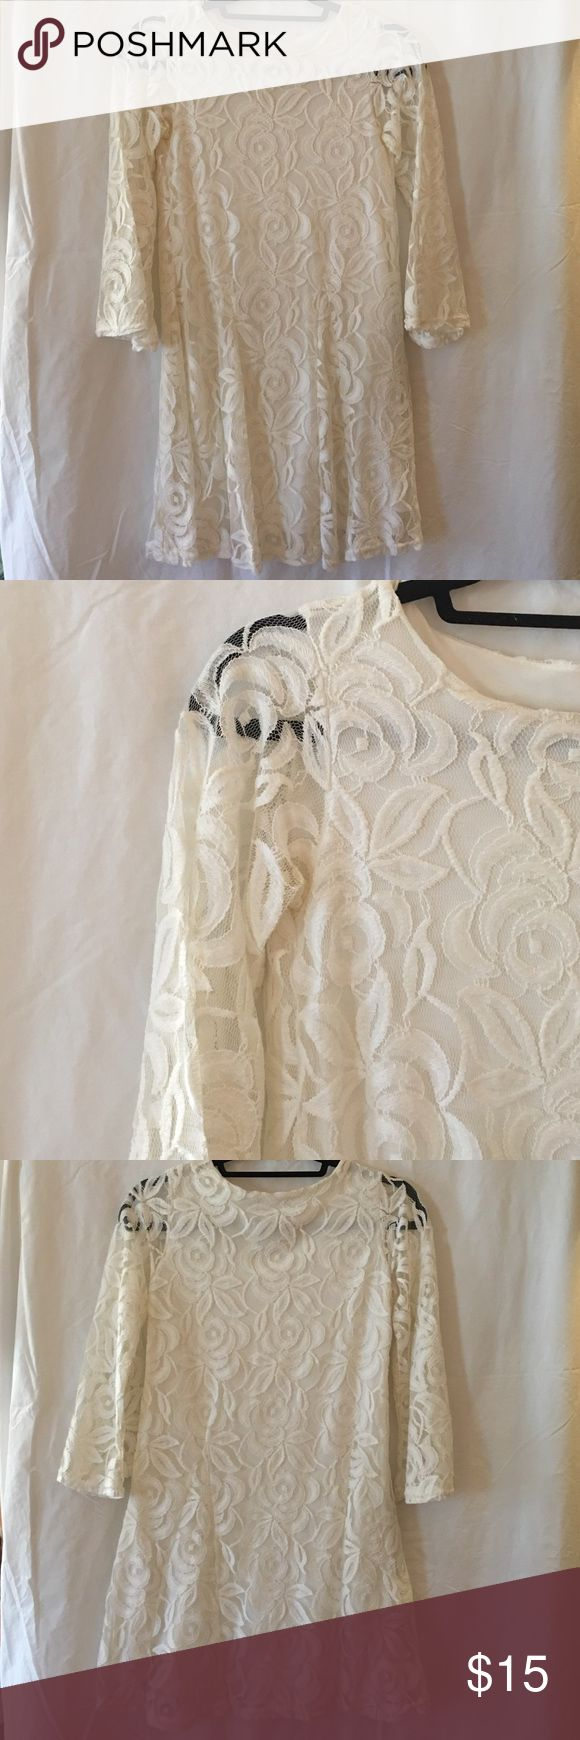 ASOS White Lace Mini Dress with 3/4 Bell Sleeves White lace mini dress from ASOS featuring 3/4 length bell sleeves. Lined. UK size 8, fits US 4. Only worn once. Perfect for sorority initiation. ASOS Dresses Mini